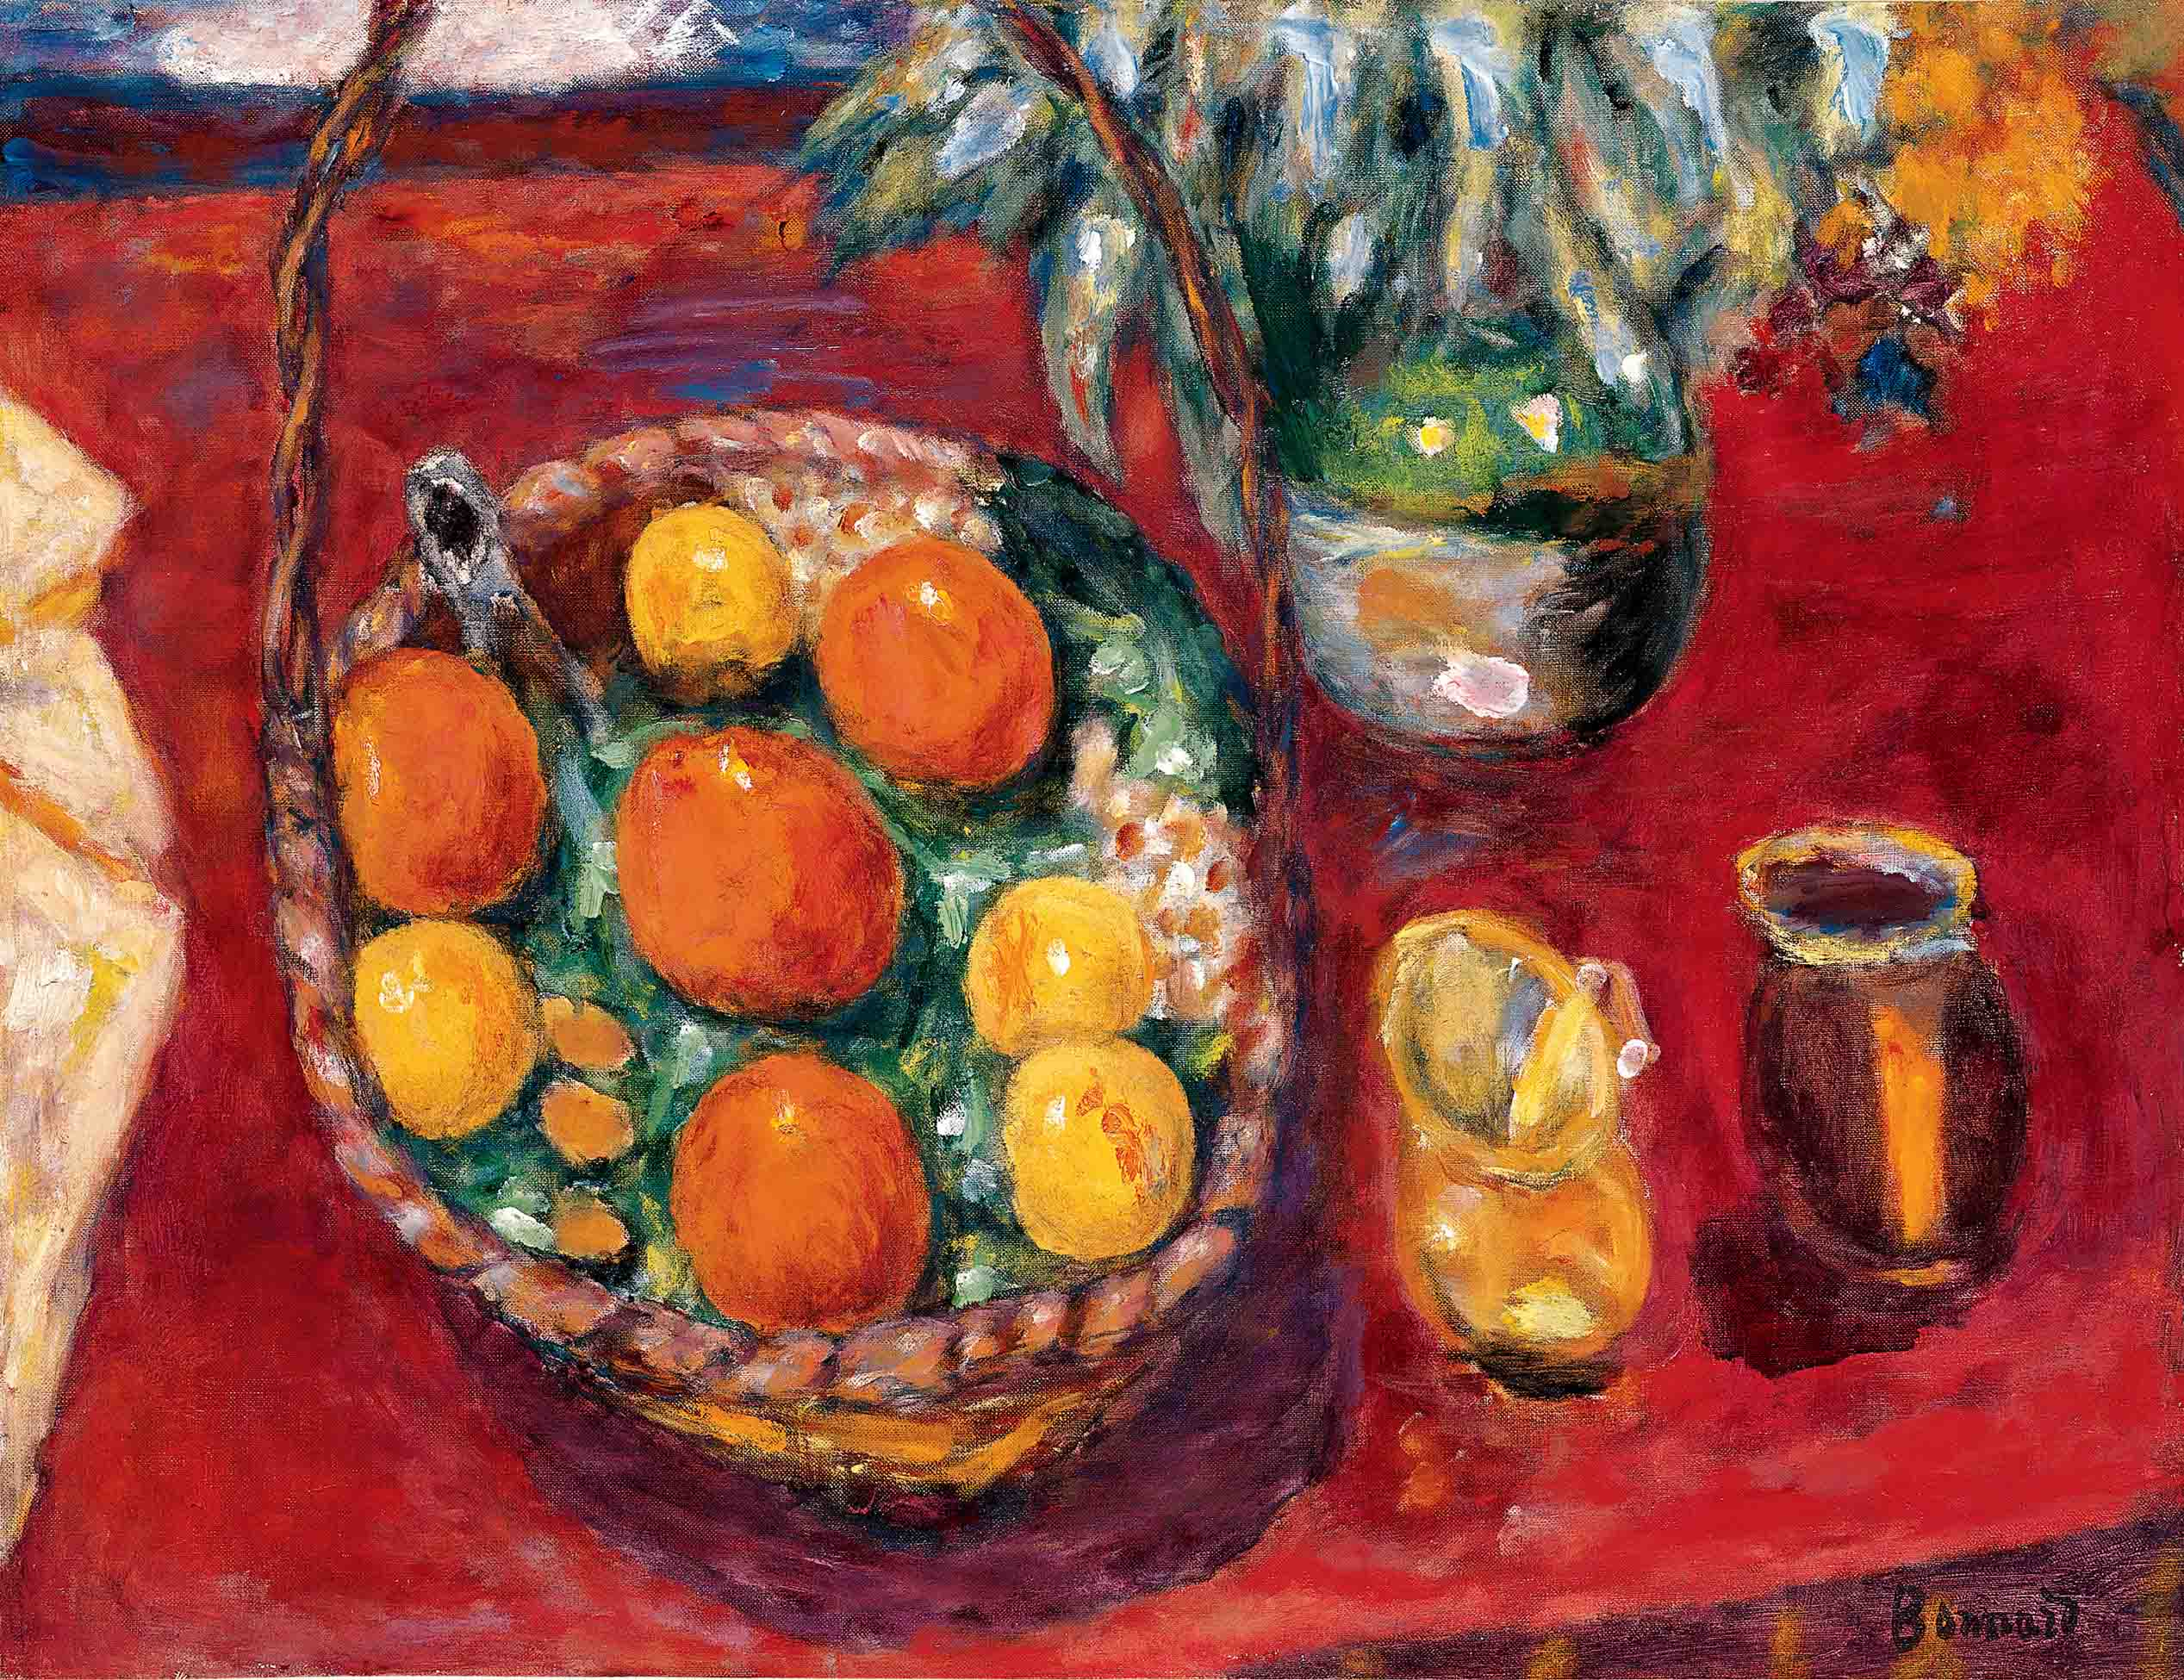 05_bonnard_basket-of-fruit_oranges-and-persimmons_1940 - копия (2)